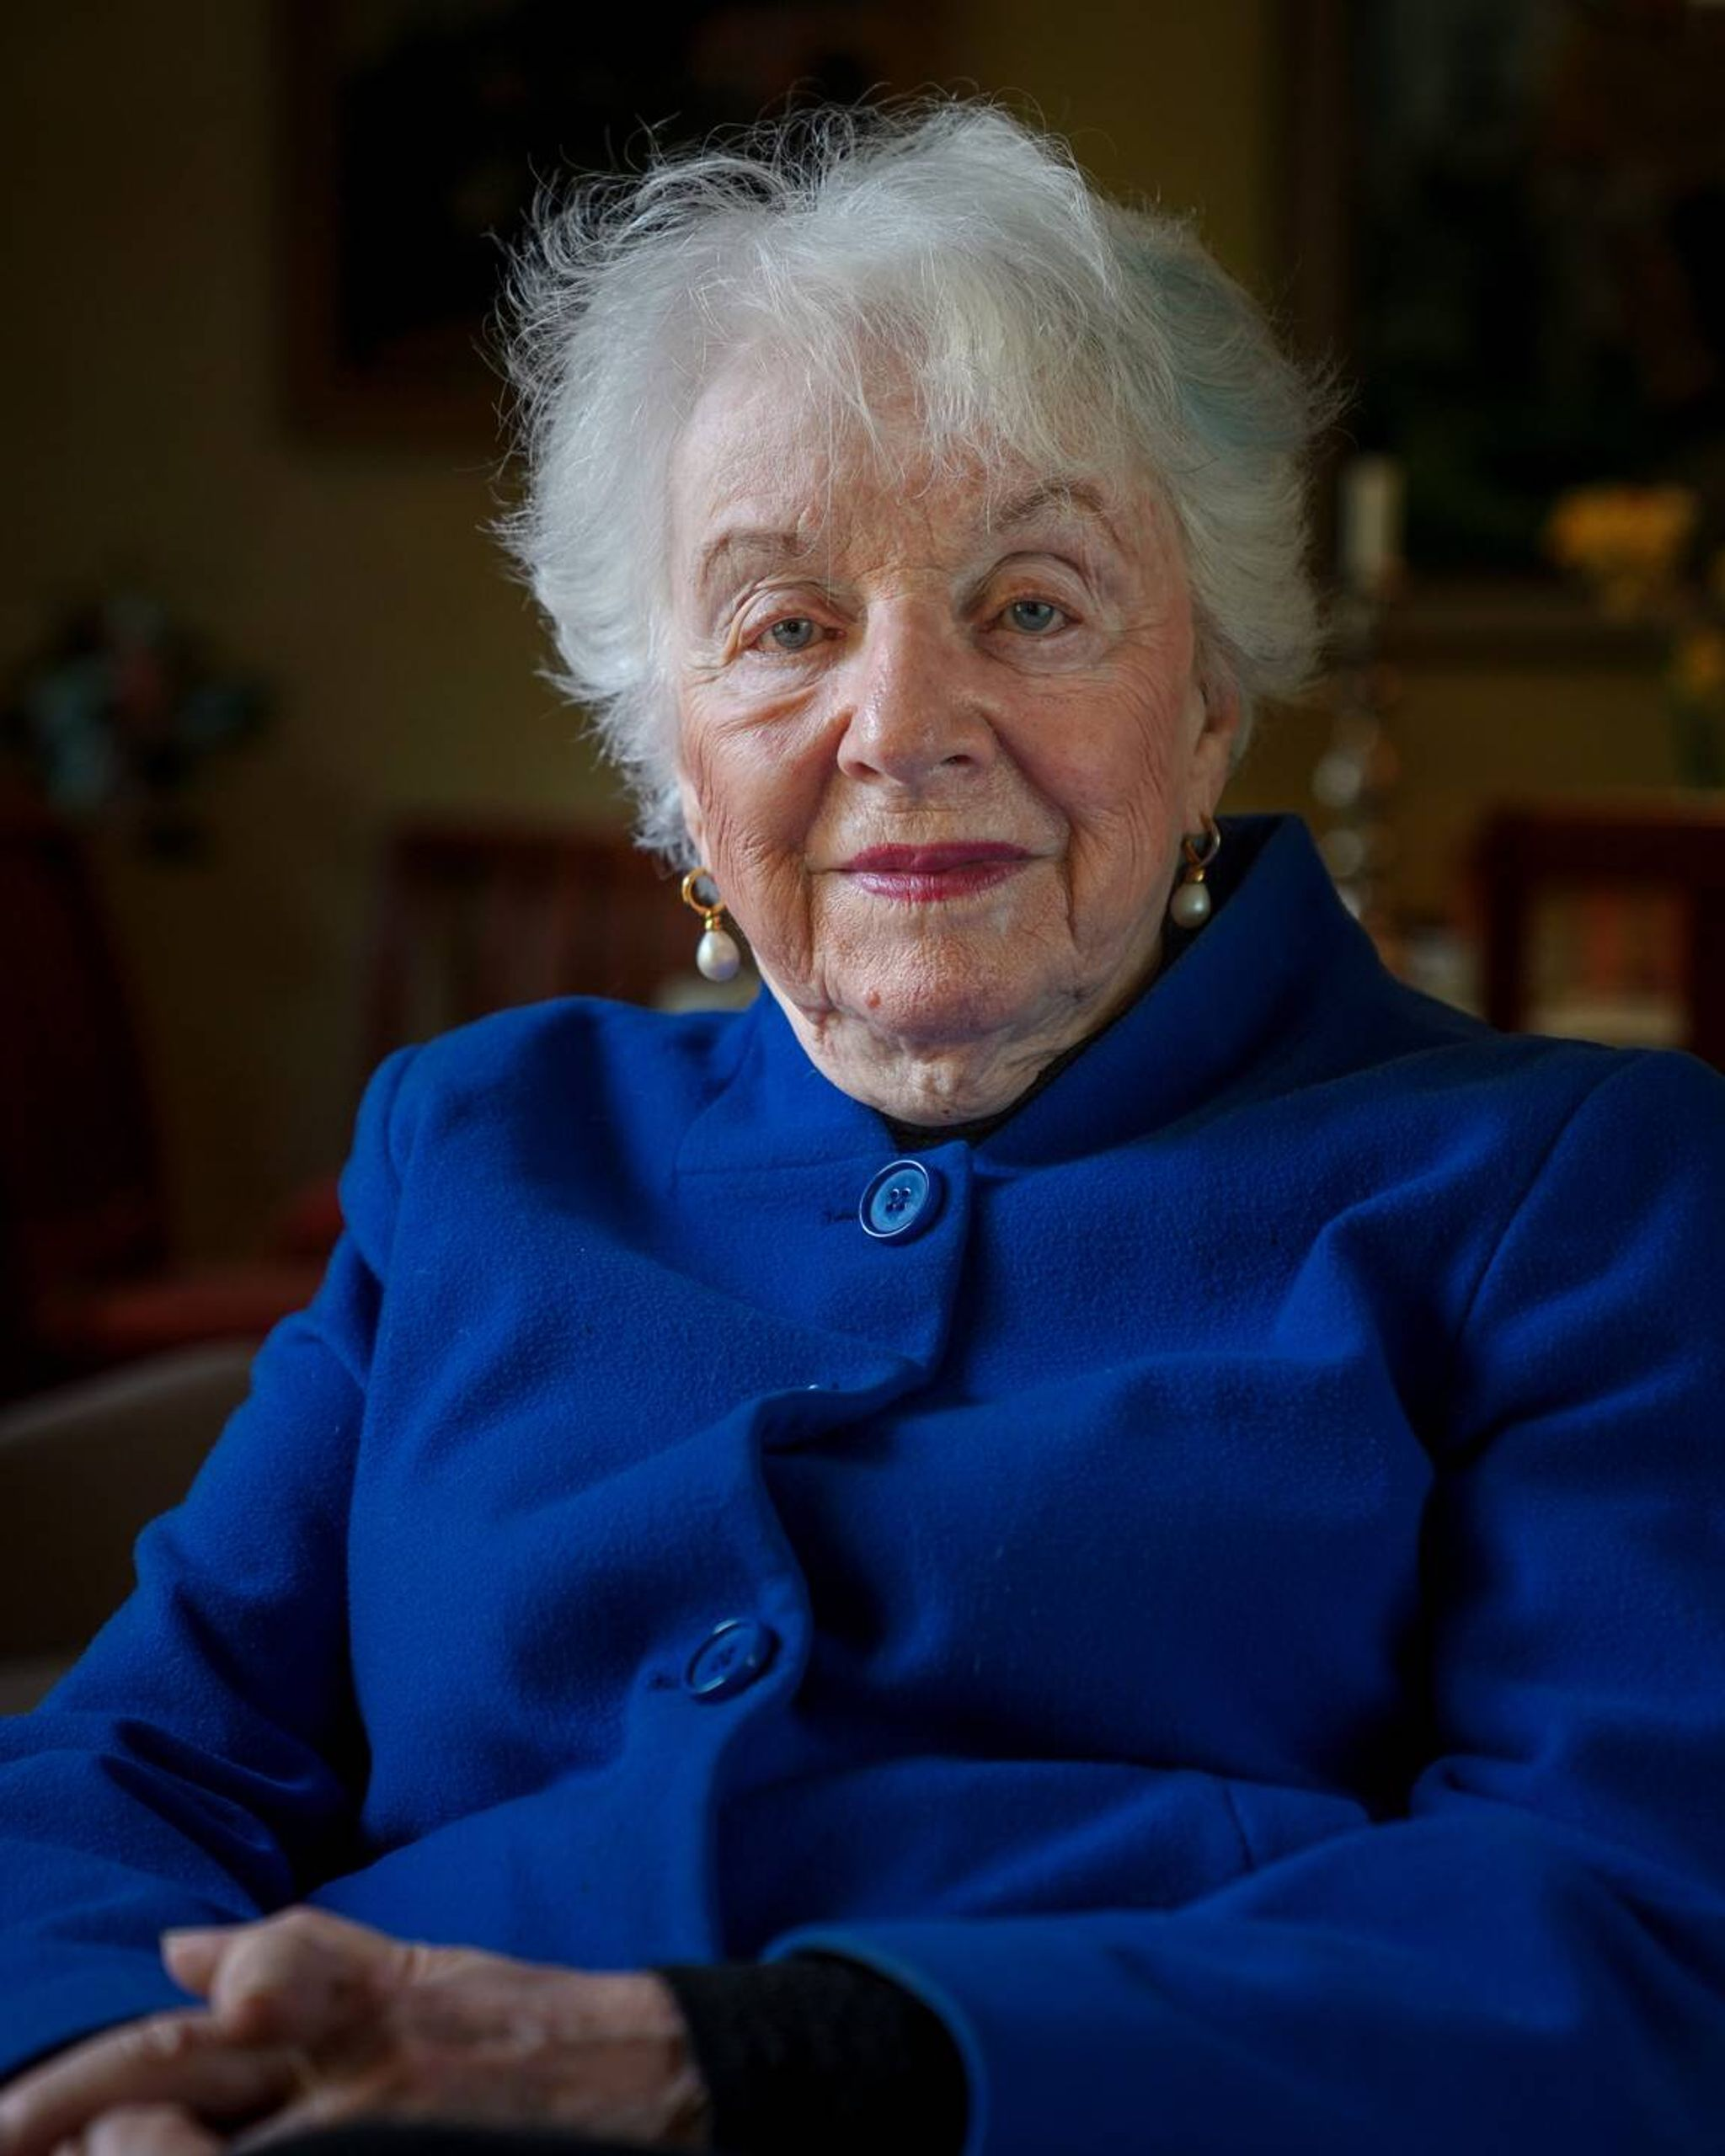 Photographic portrait of an older woman sitting on a couch in her home and smiling while wearing a blue blazer. Life, elders, Rewire, PBS, our future